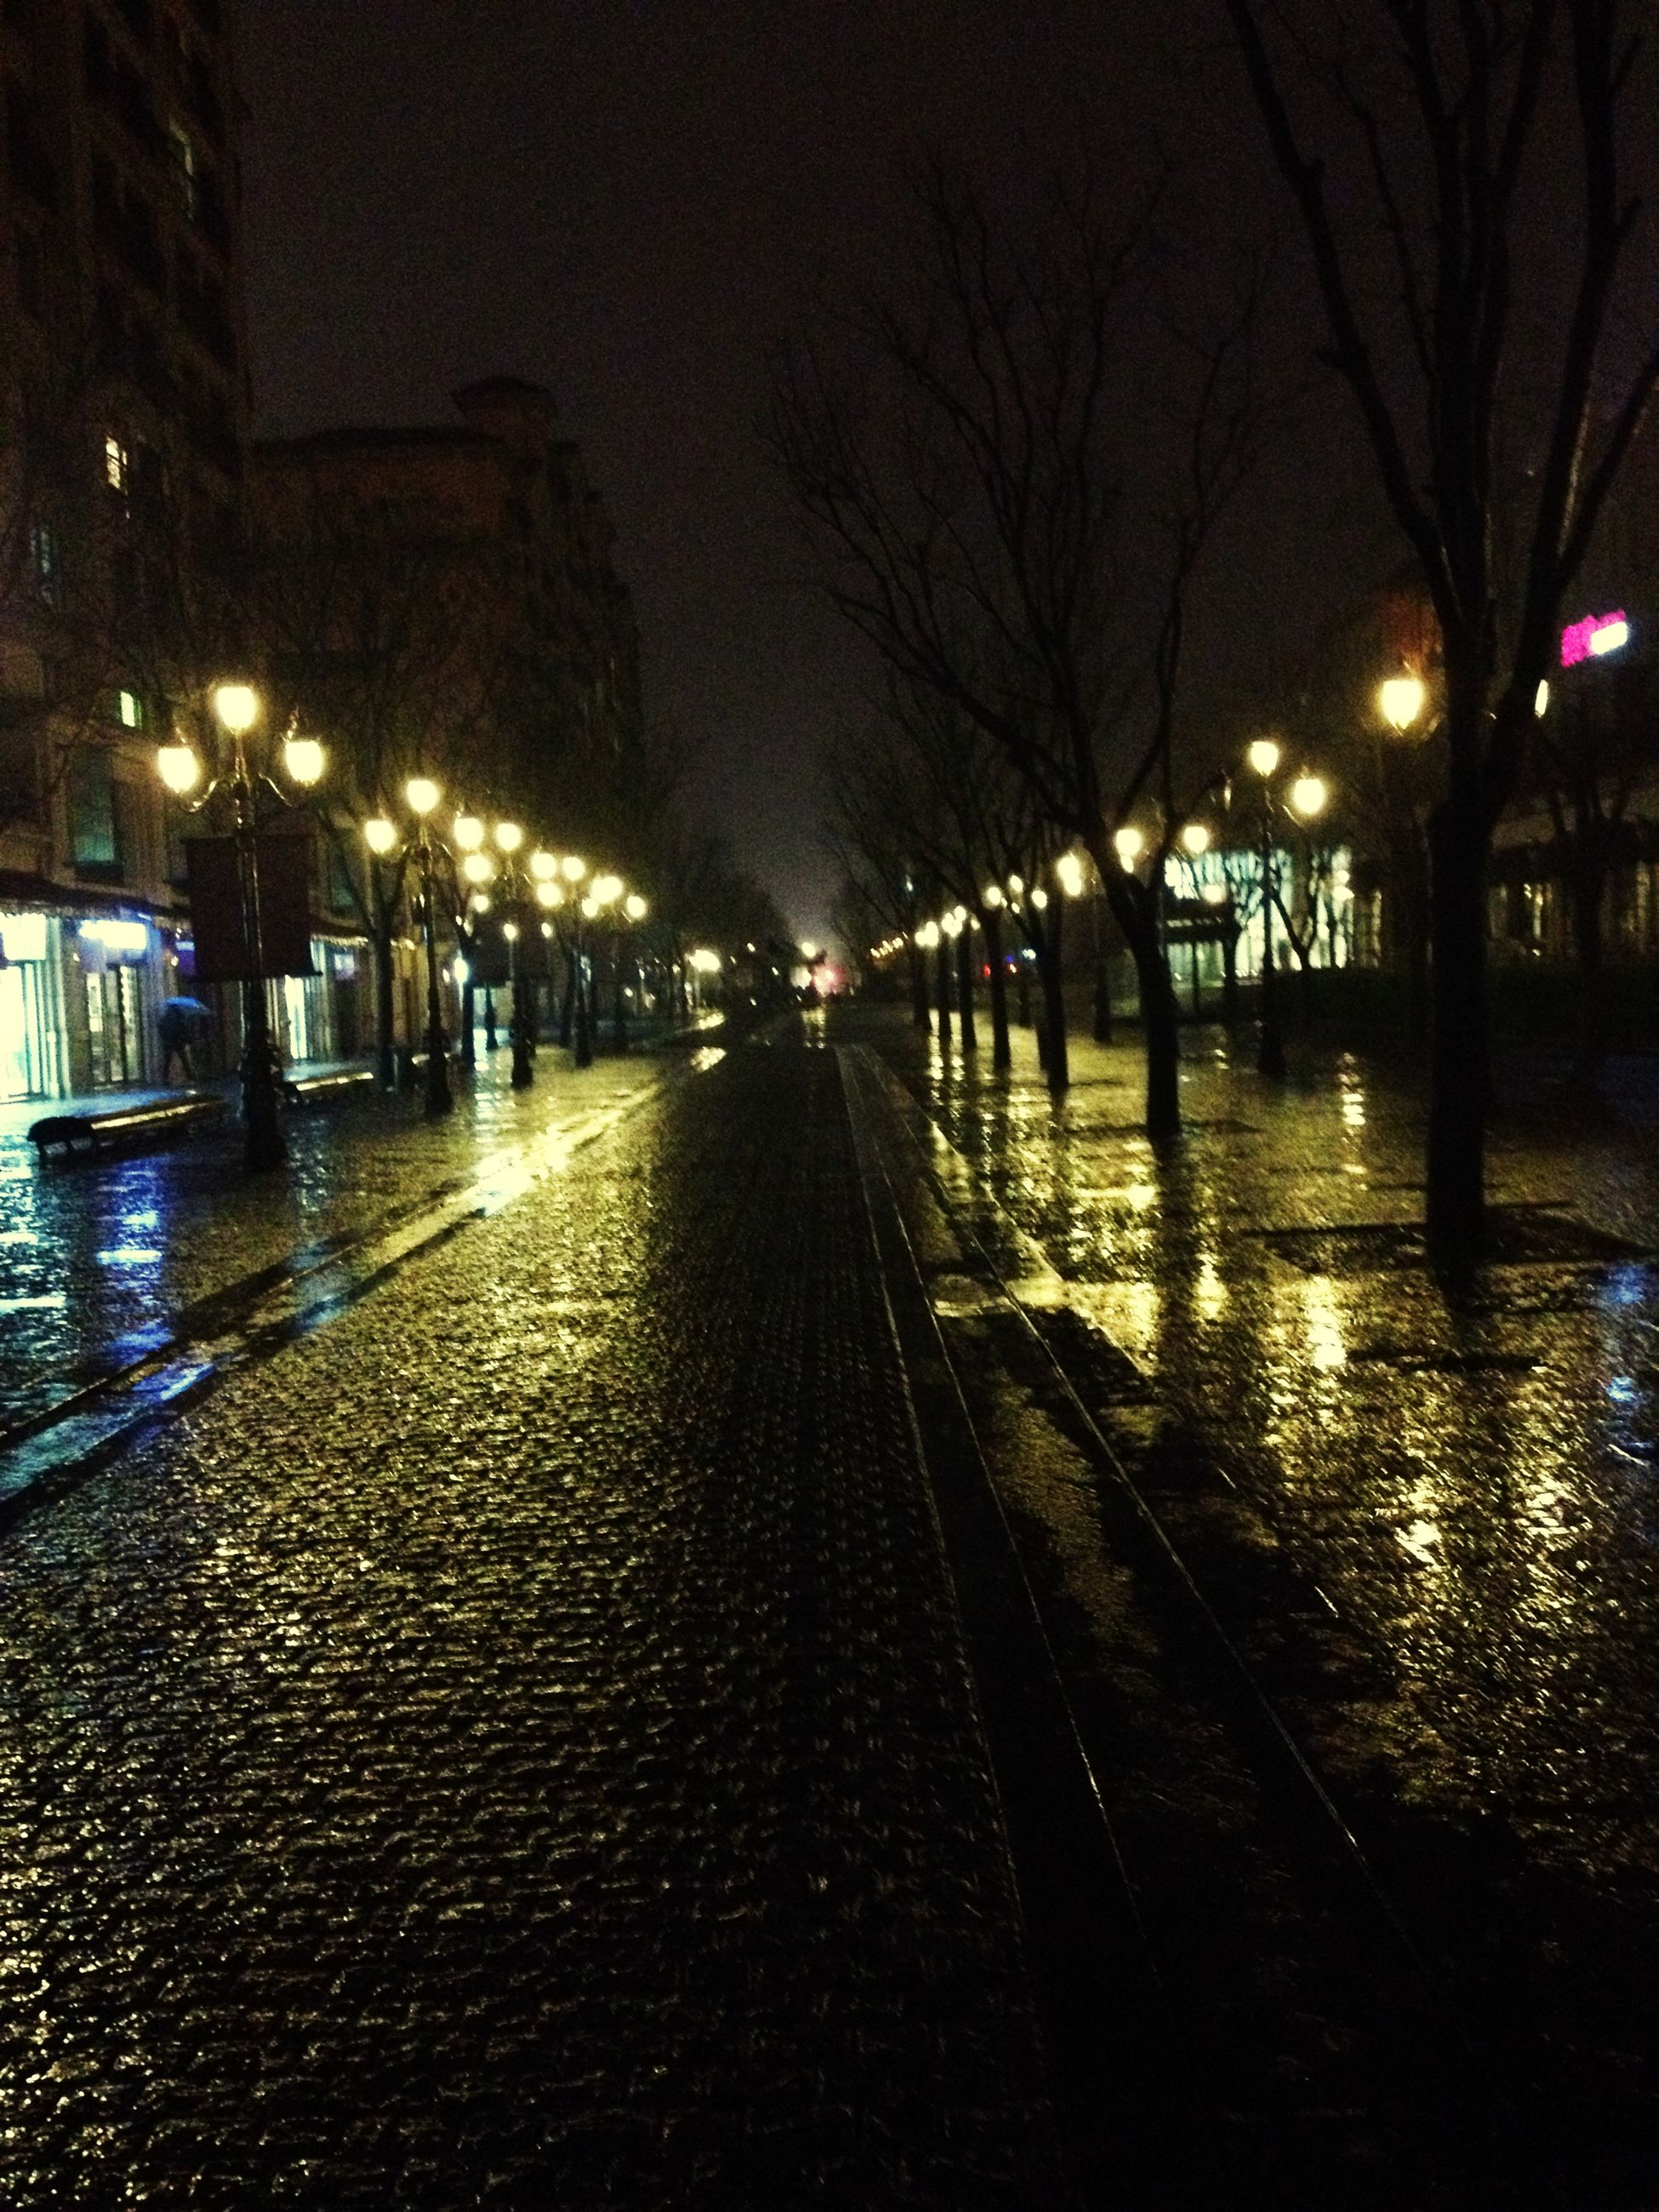 night, illuminated, street light, the way forward, built structure, architecture, building exterior, street, lighting equipment, city, transportation, bare tree, diminishing perspective, road, outdoors, season, wet, winter, empty, water